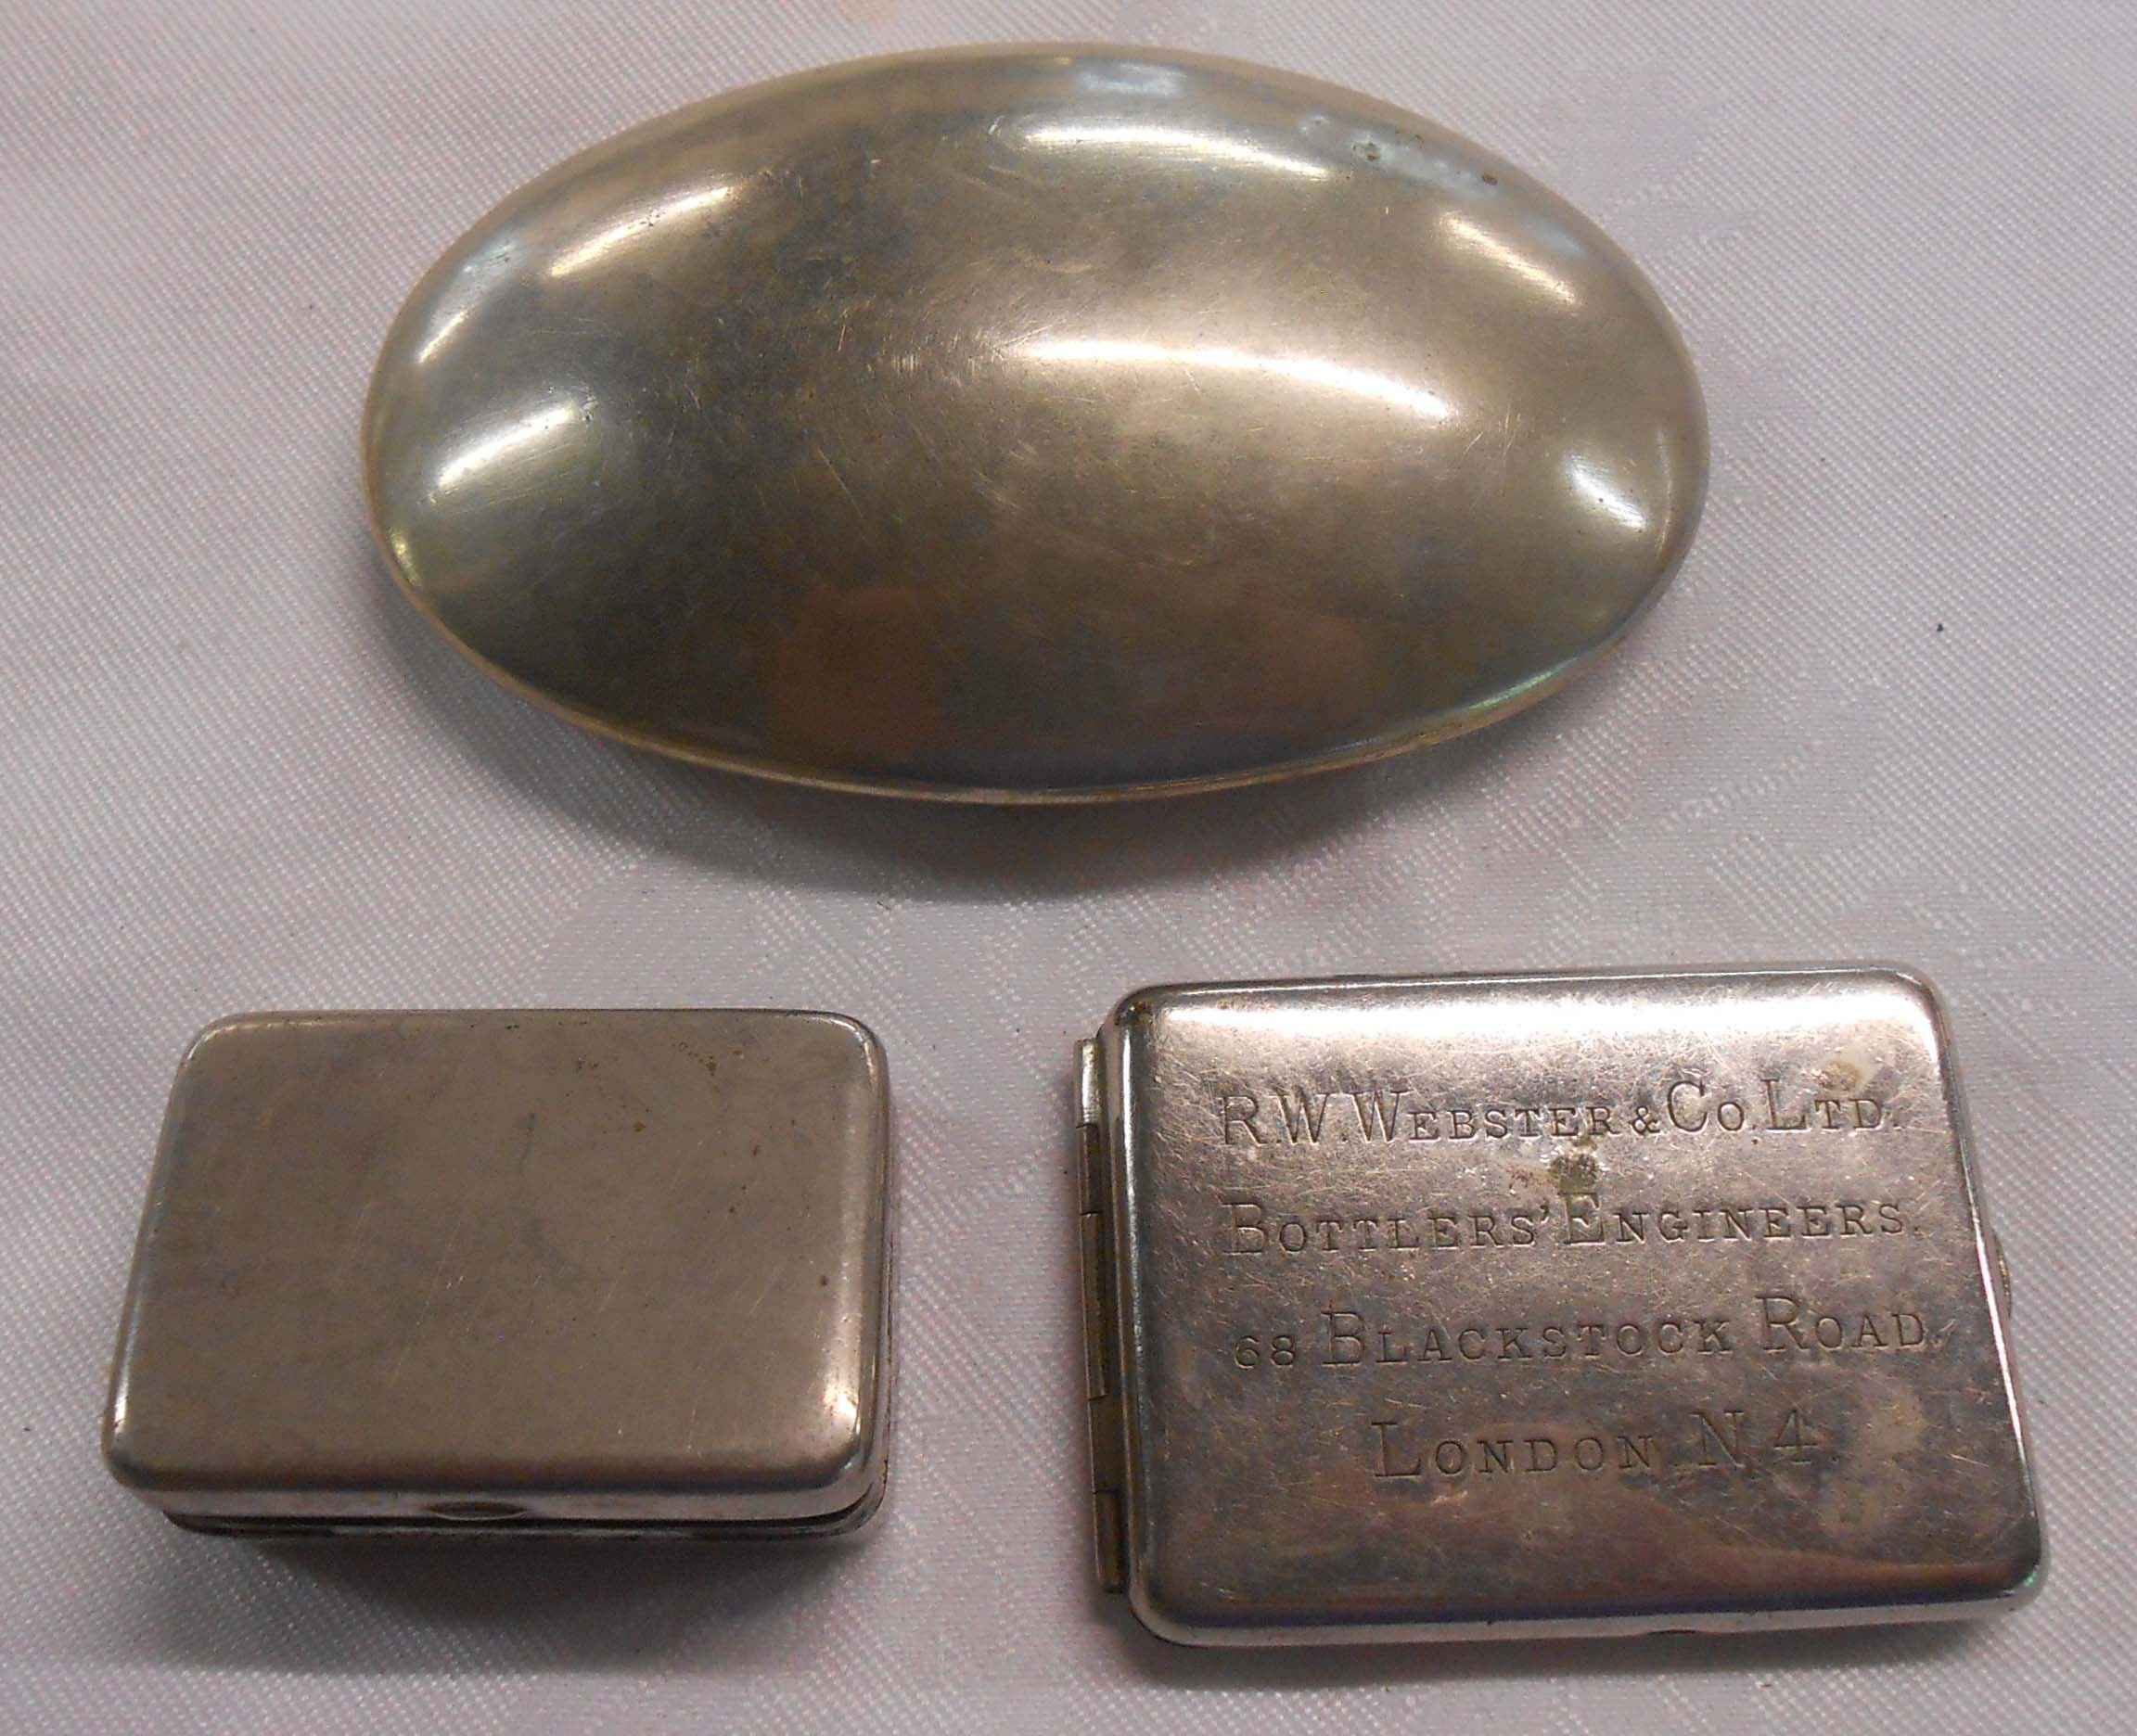 A silver plated tobacco box with match strike - sold with a chrome plated vesta advertising RW